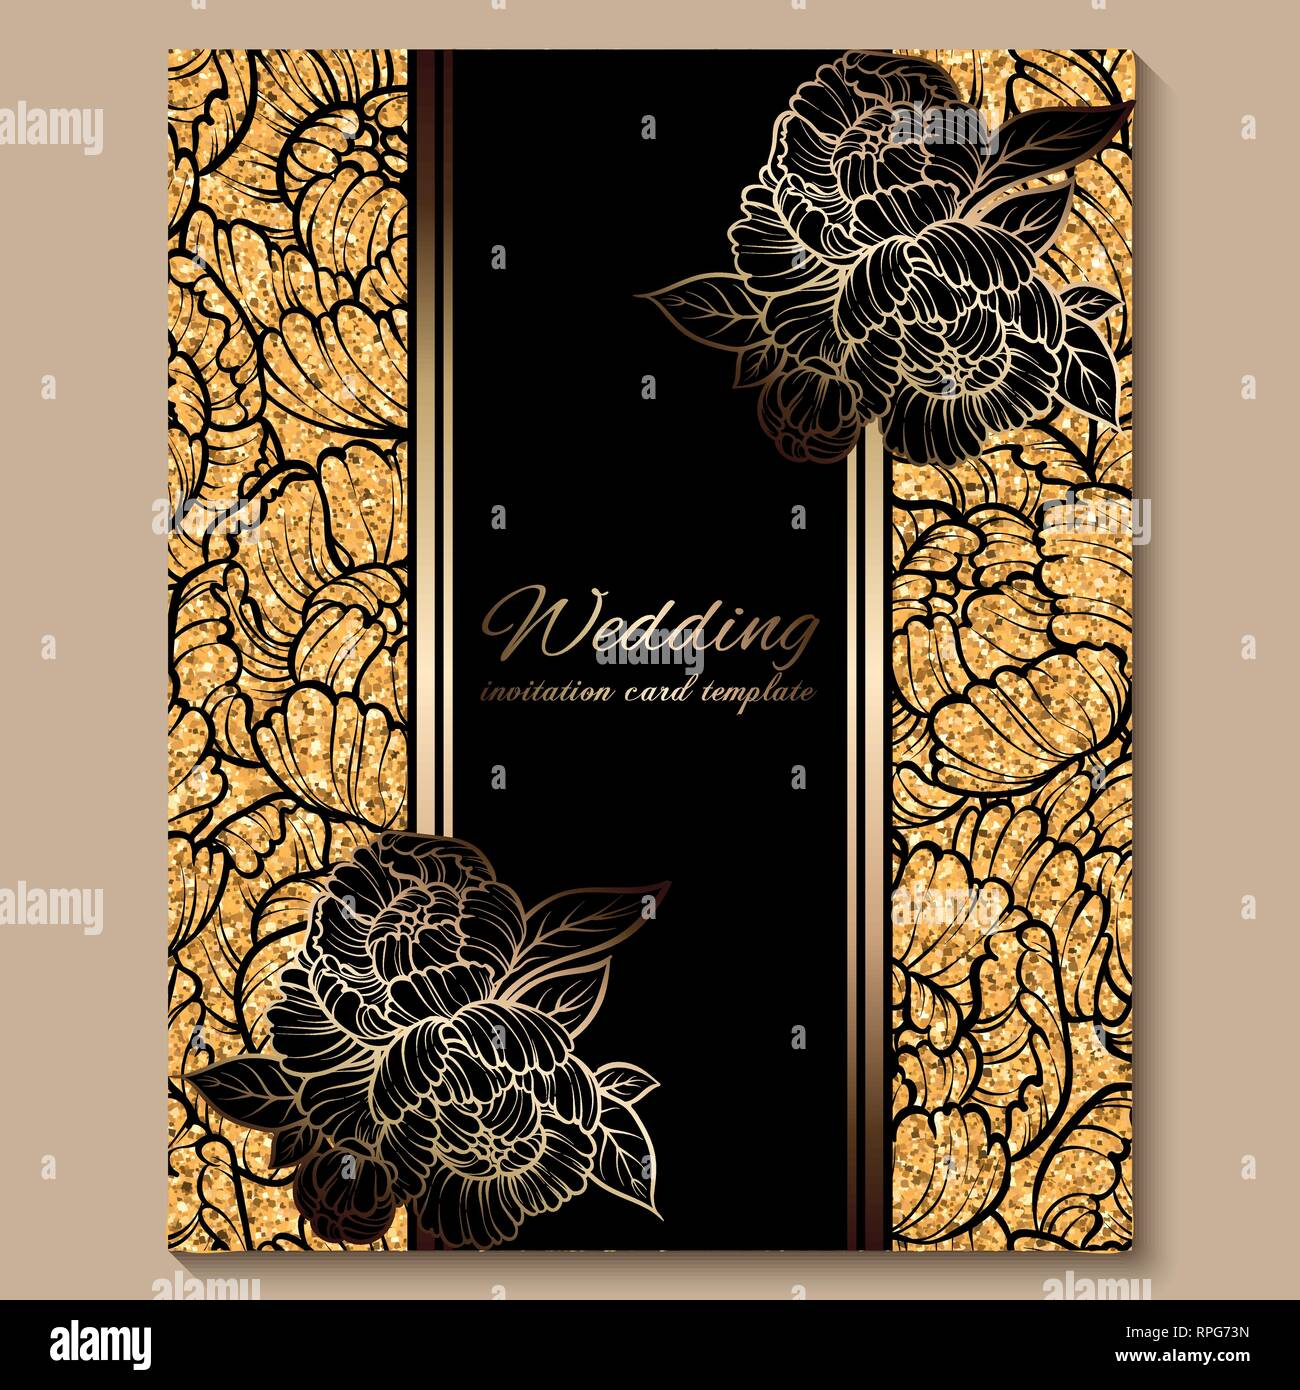 https www alamy com antique royal luxury wedding invitation card golden glitter background with frame and place for text black lacy foliage made of roses or peonies image237614041 html